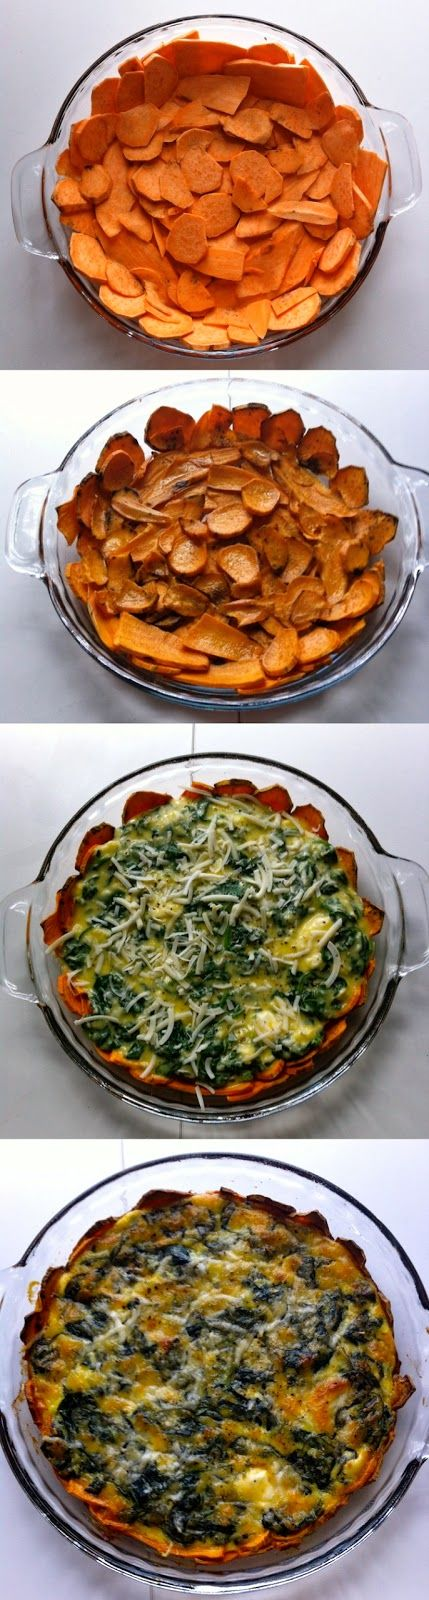 Sweet Potato Crusted Spinach Quiche by fourteenforty365 #Quiche #Sweet_Potato #Spinach